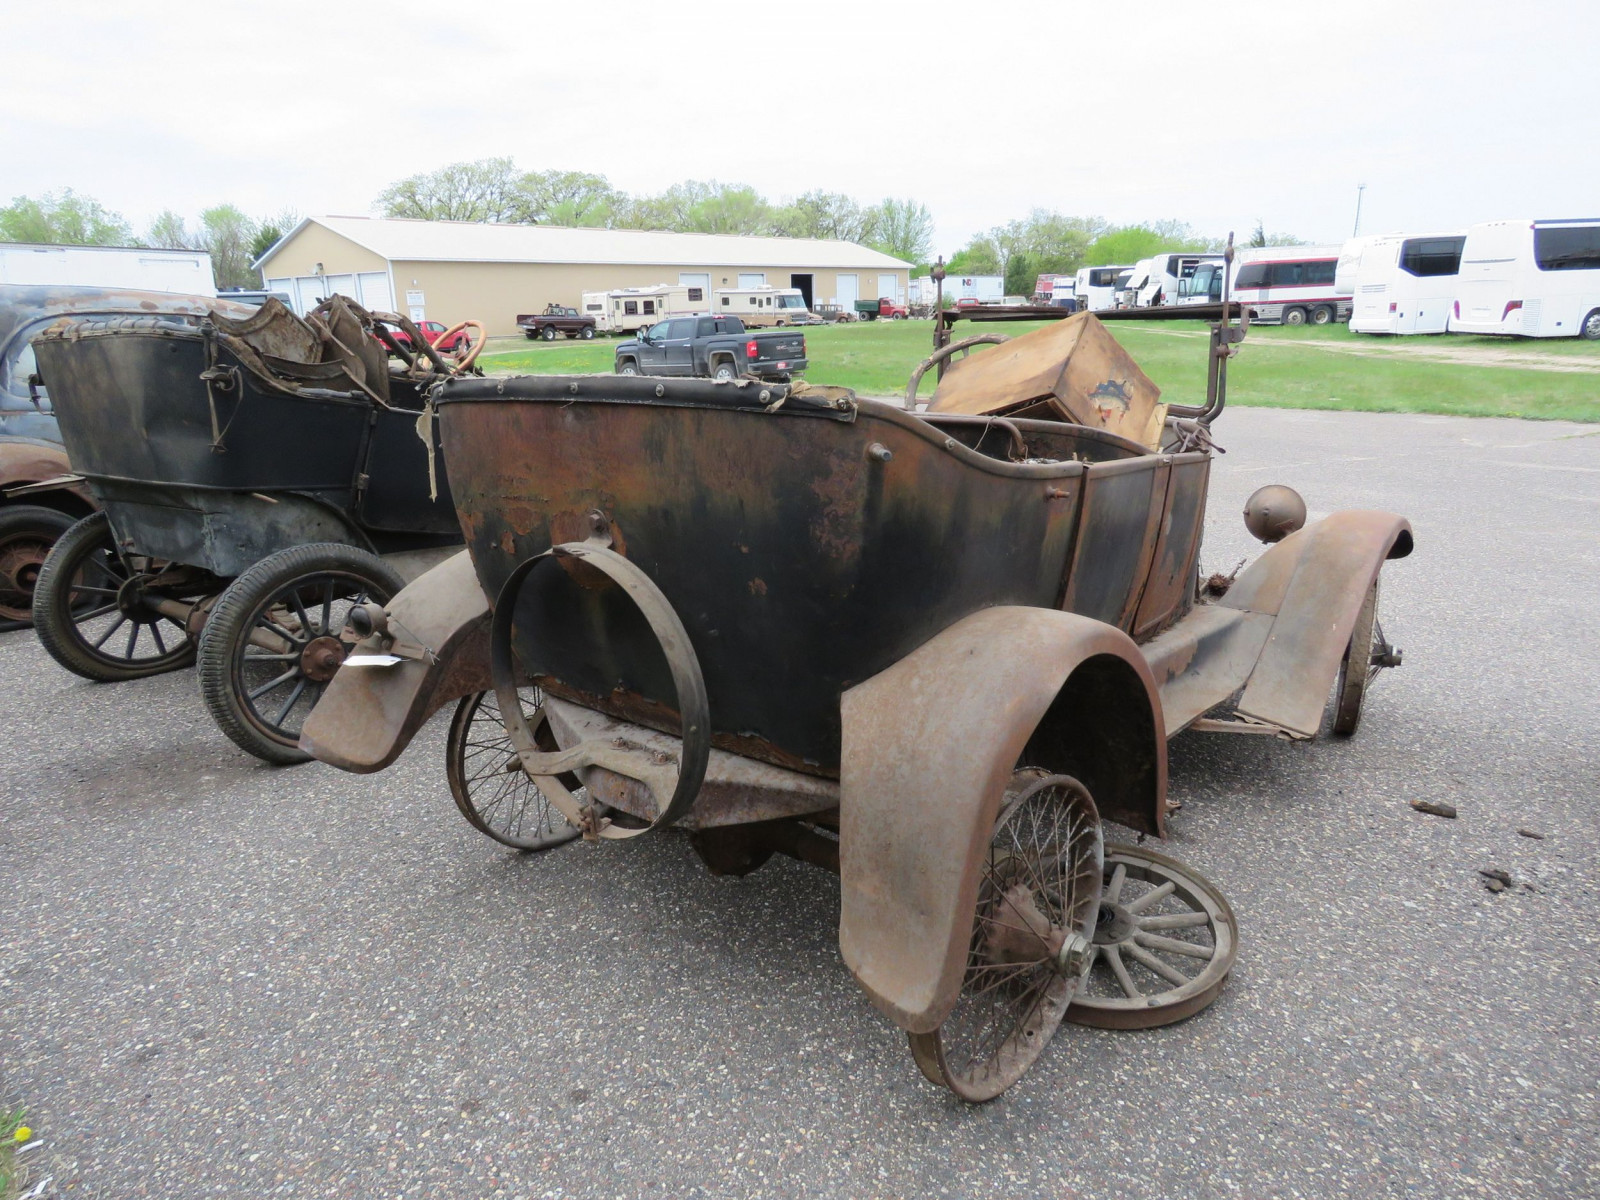 1925 Overland Touring Car for Project or Parts - Image 4